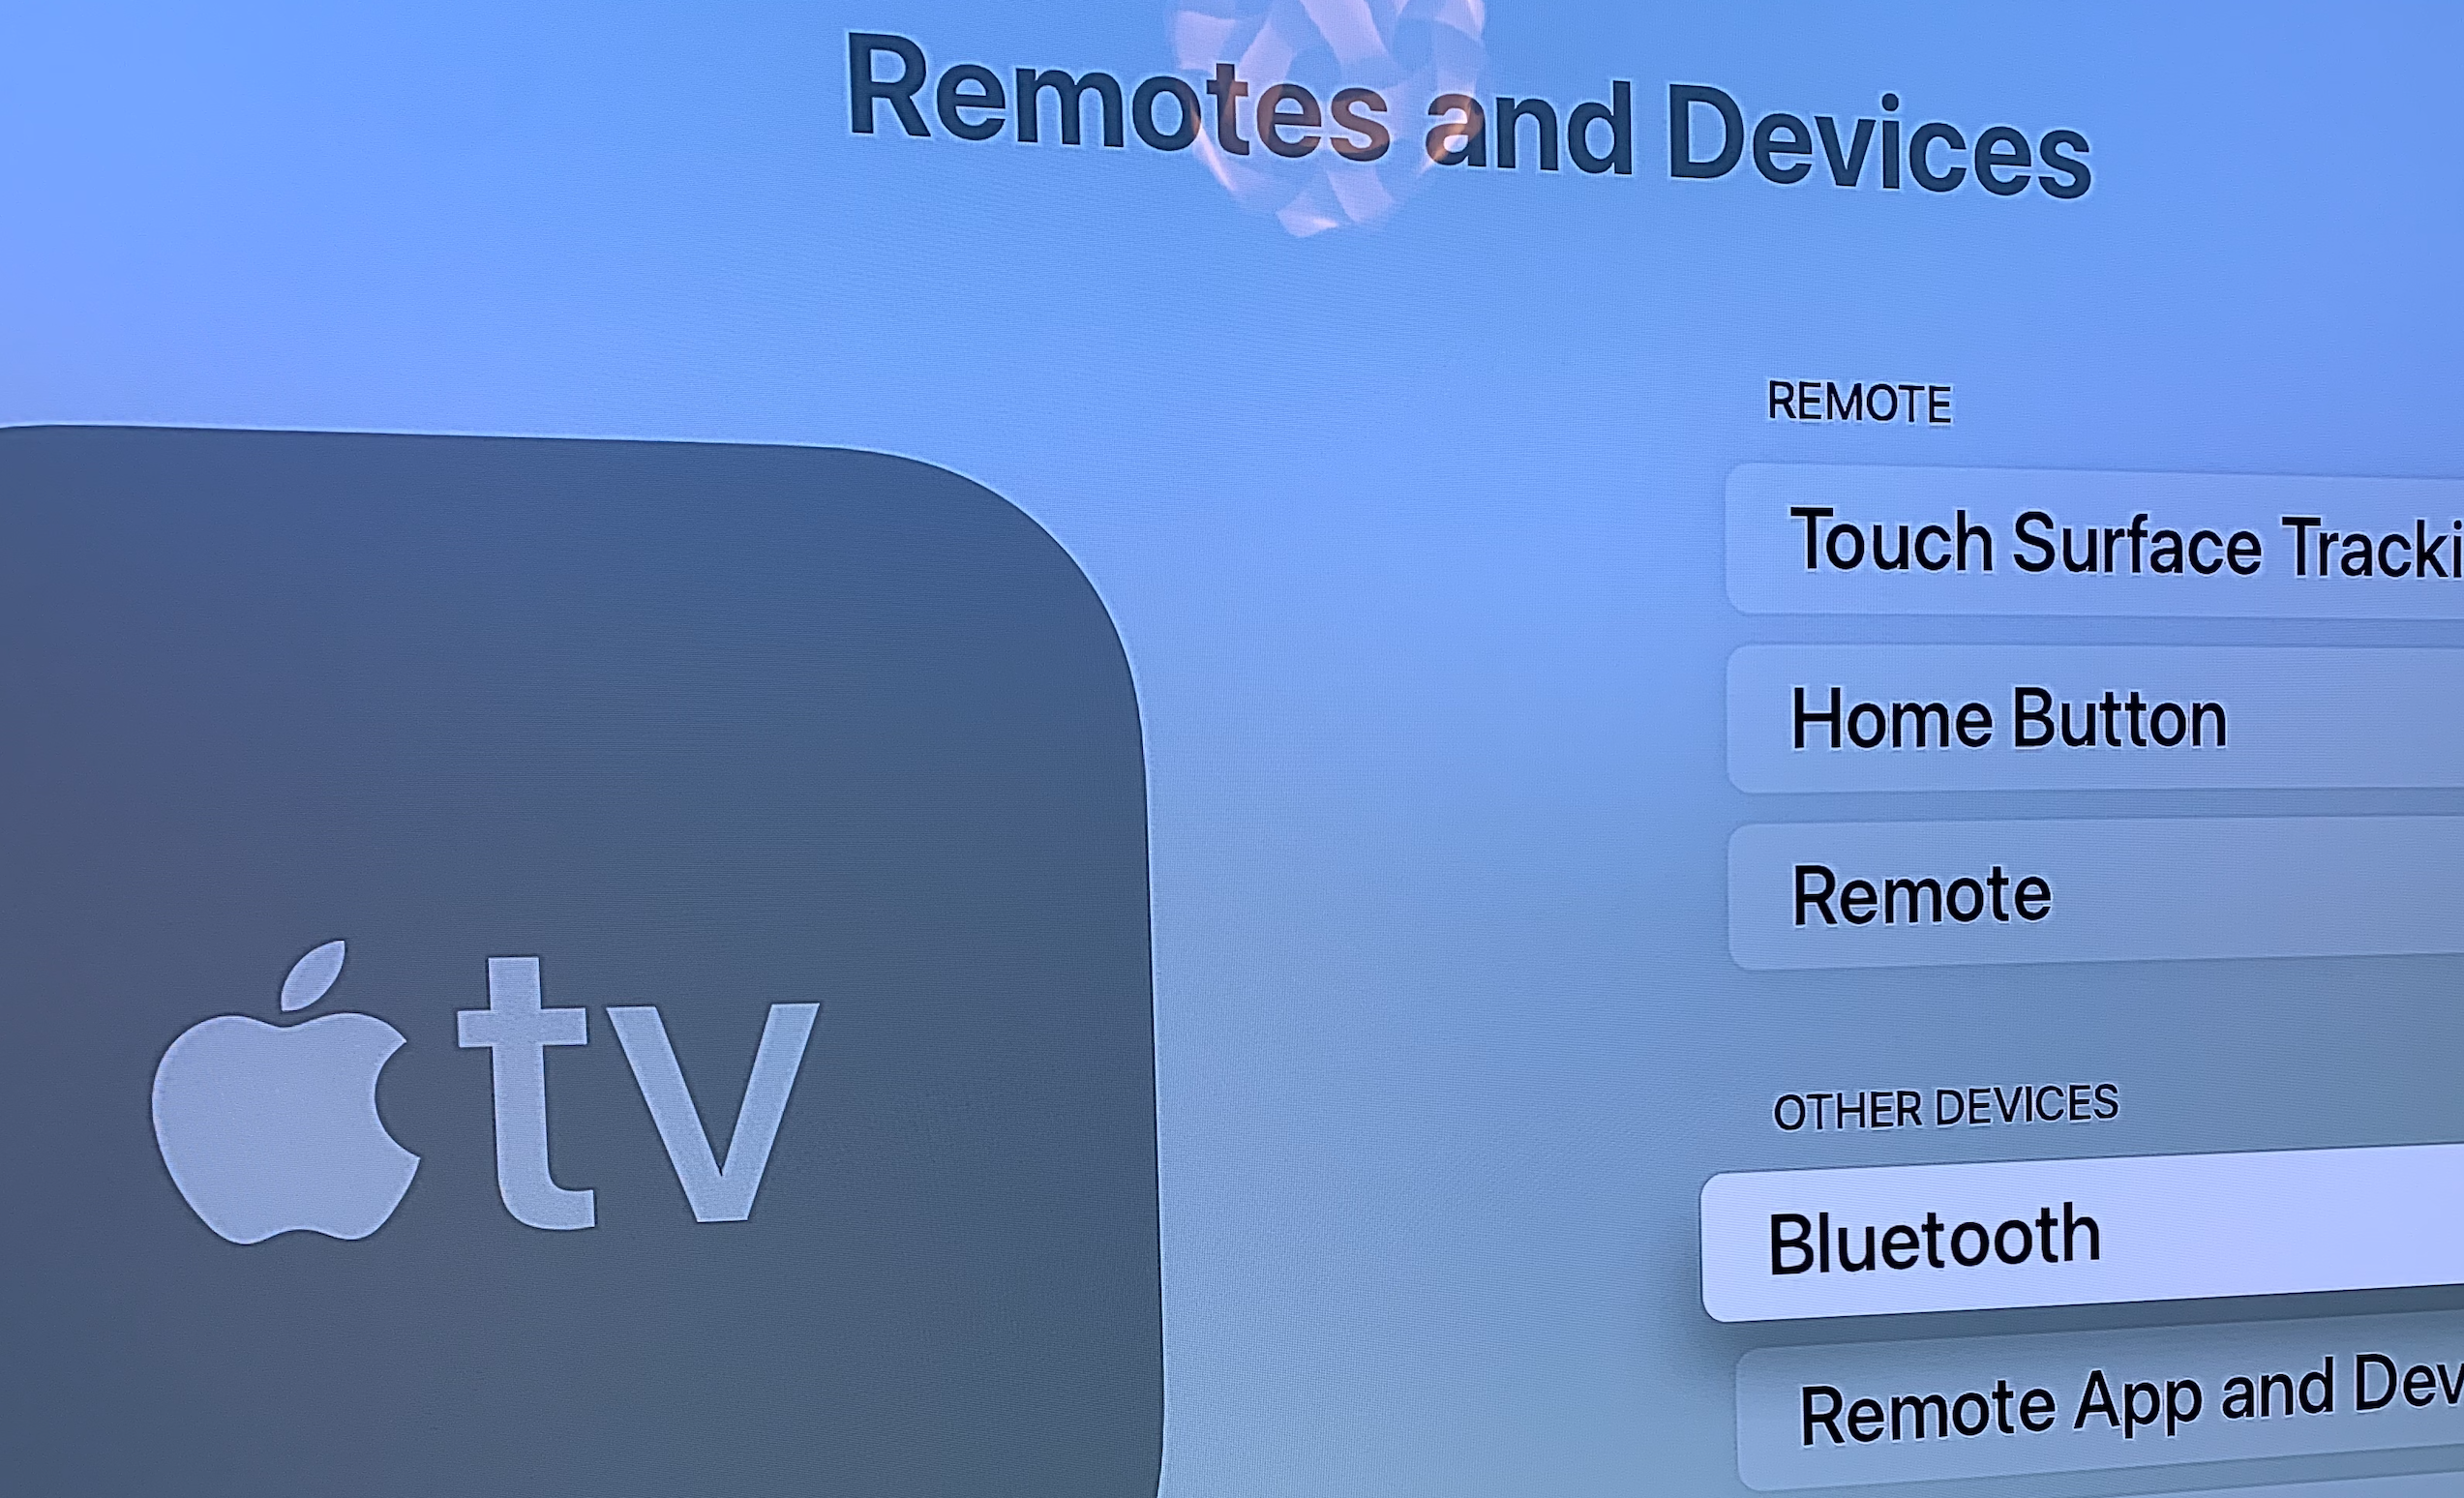 AirPods and Apple TV